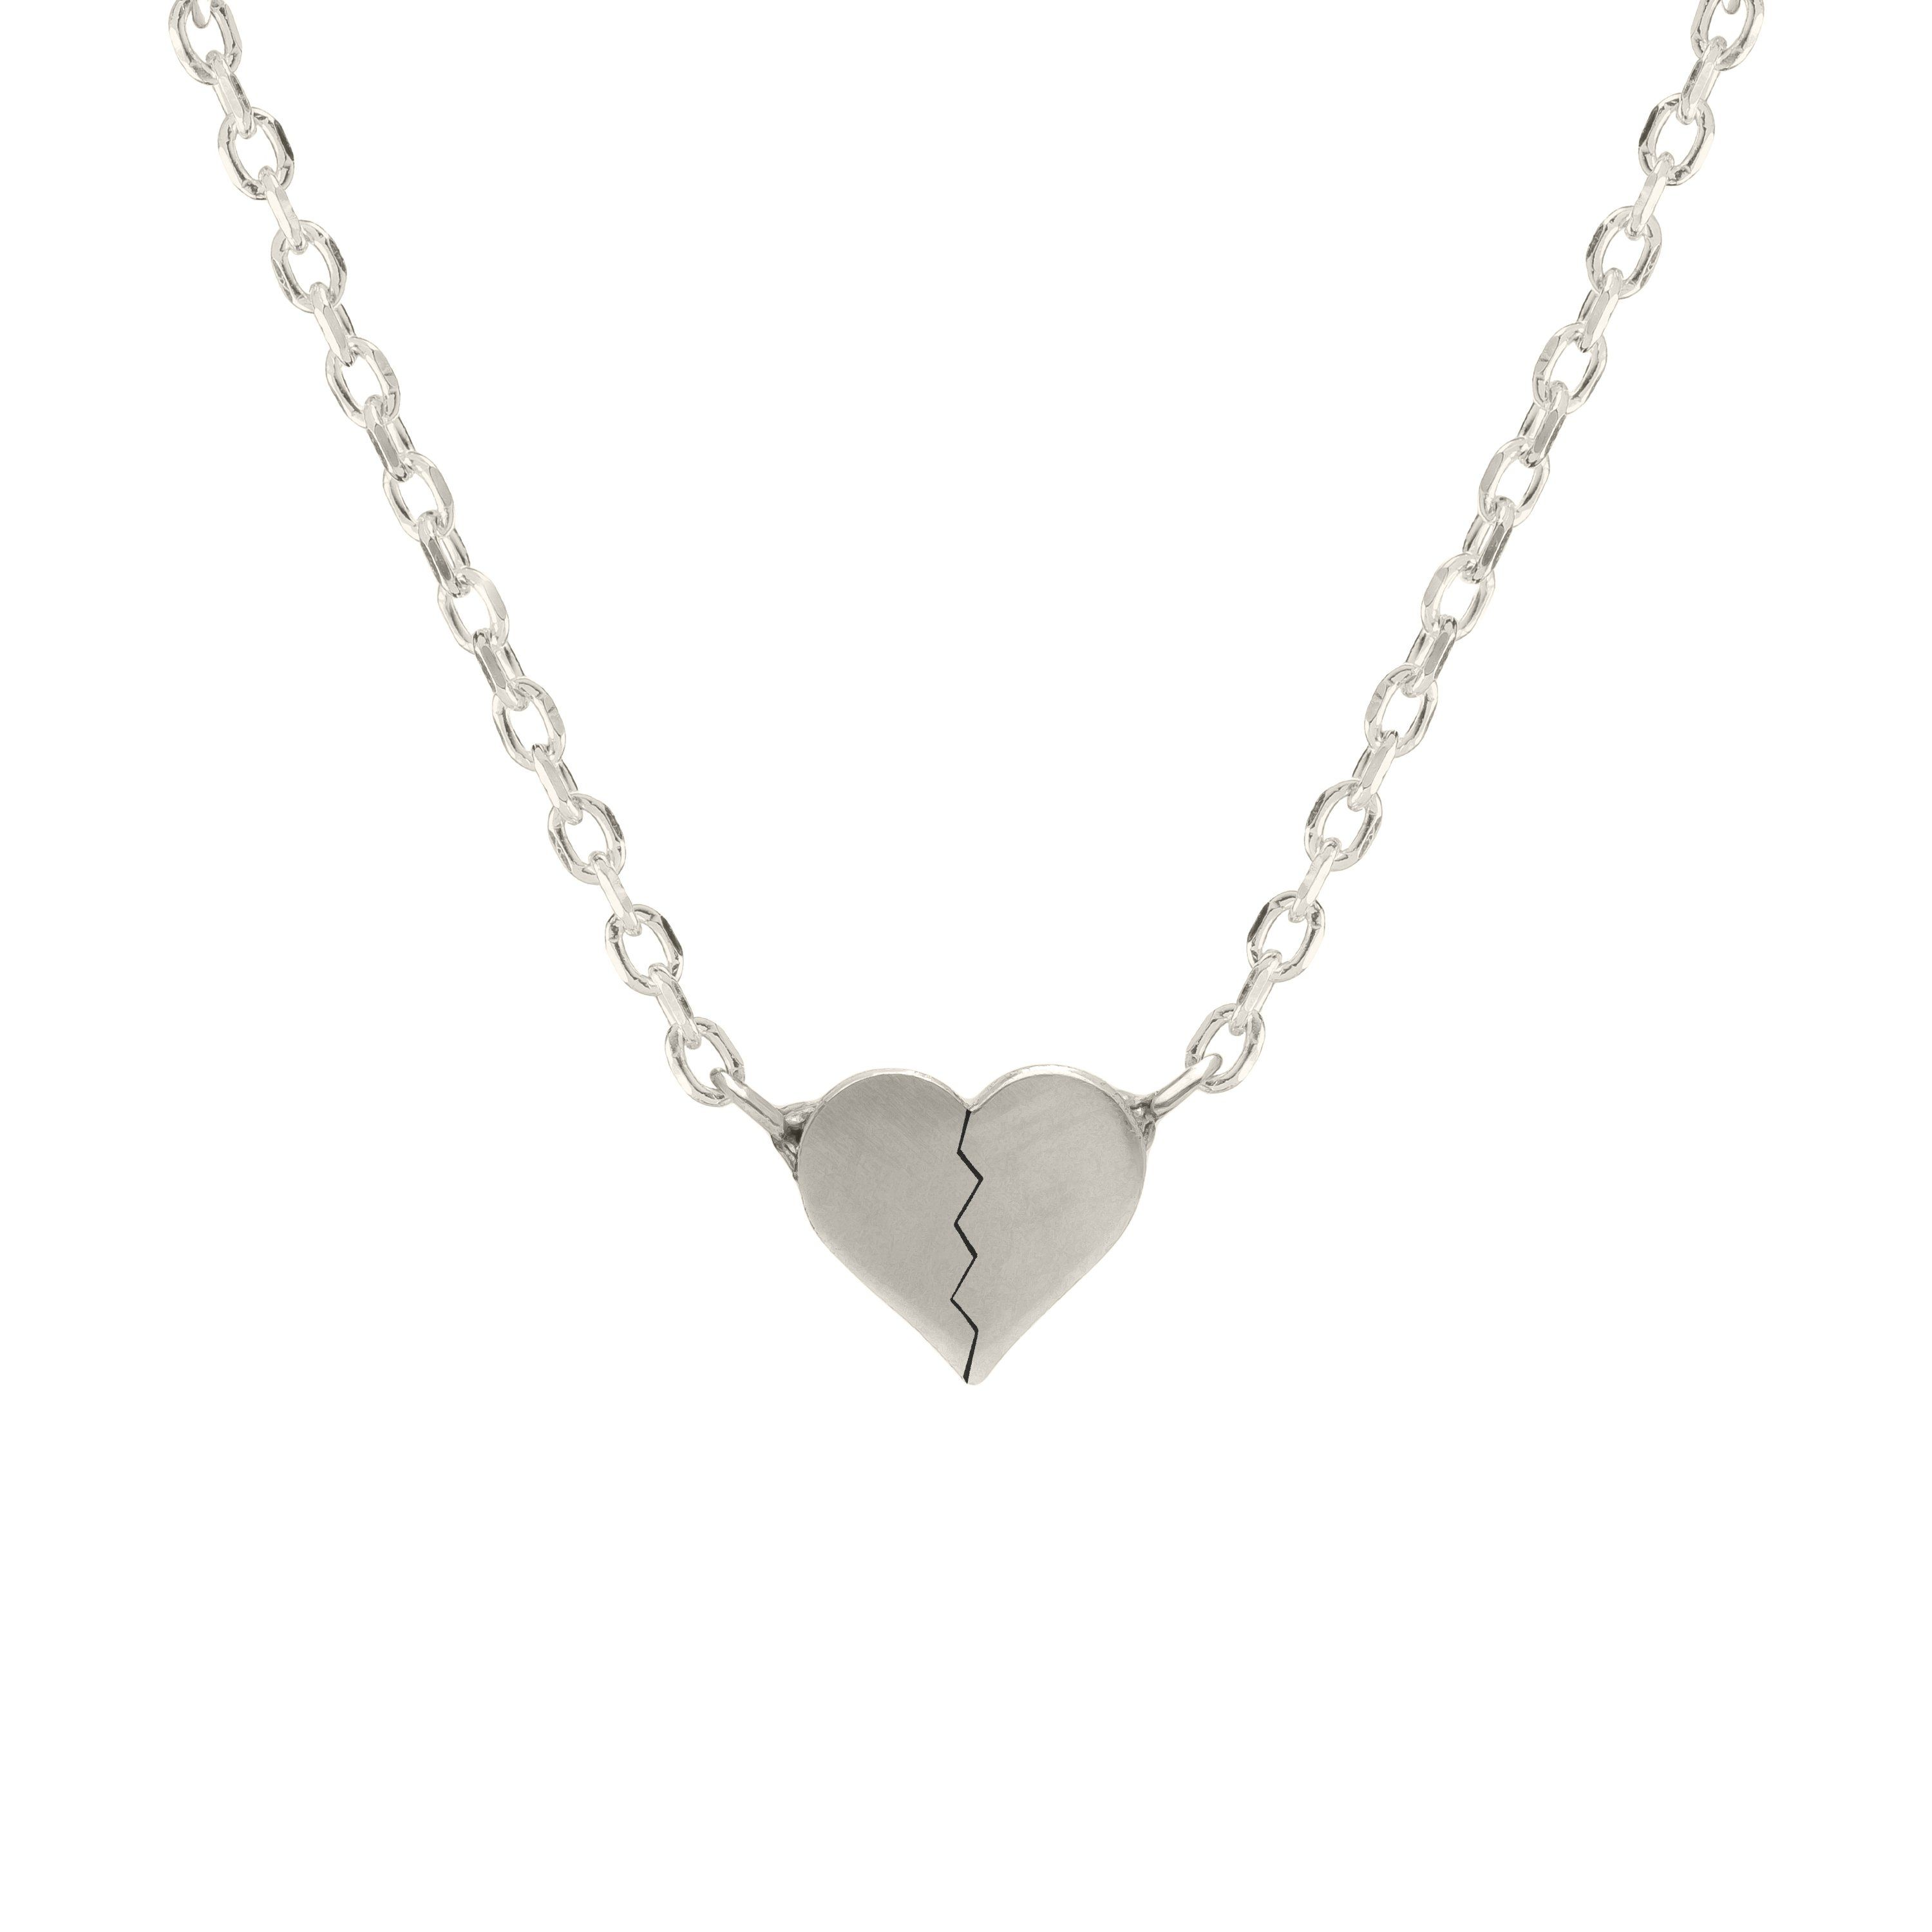 Tiny Hearts Forever Pendant Description: The Tiny Hearts Forever Pendant necklace may be small. But, it is meant to be a powerful everyday reminder to be confident and proud of the person you are today while wearing it; no matter whether your heart feels broken or whole. Our HOMS Tiny Hearts Forever Pendant is part of the Hearts Forever Collections by Allison Claire. Silver or Solid 14K Yellow Gold Reversible. One side is a whole heart and the other is a broken heart. each heart is 4mm tall Adju